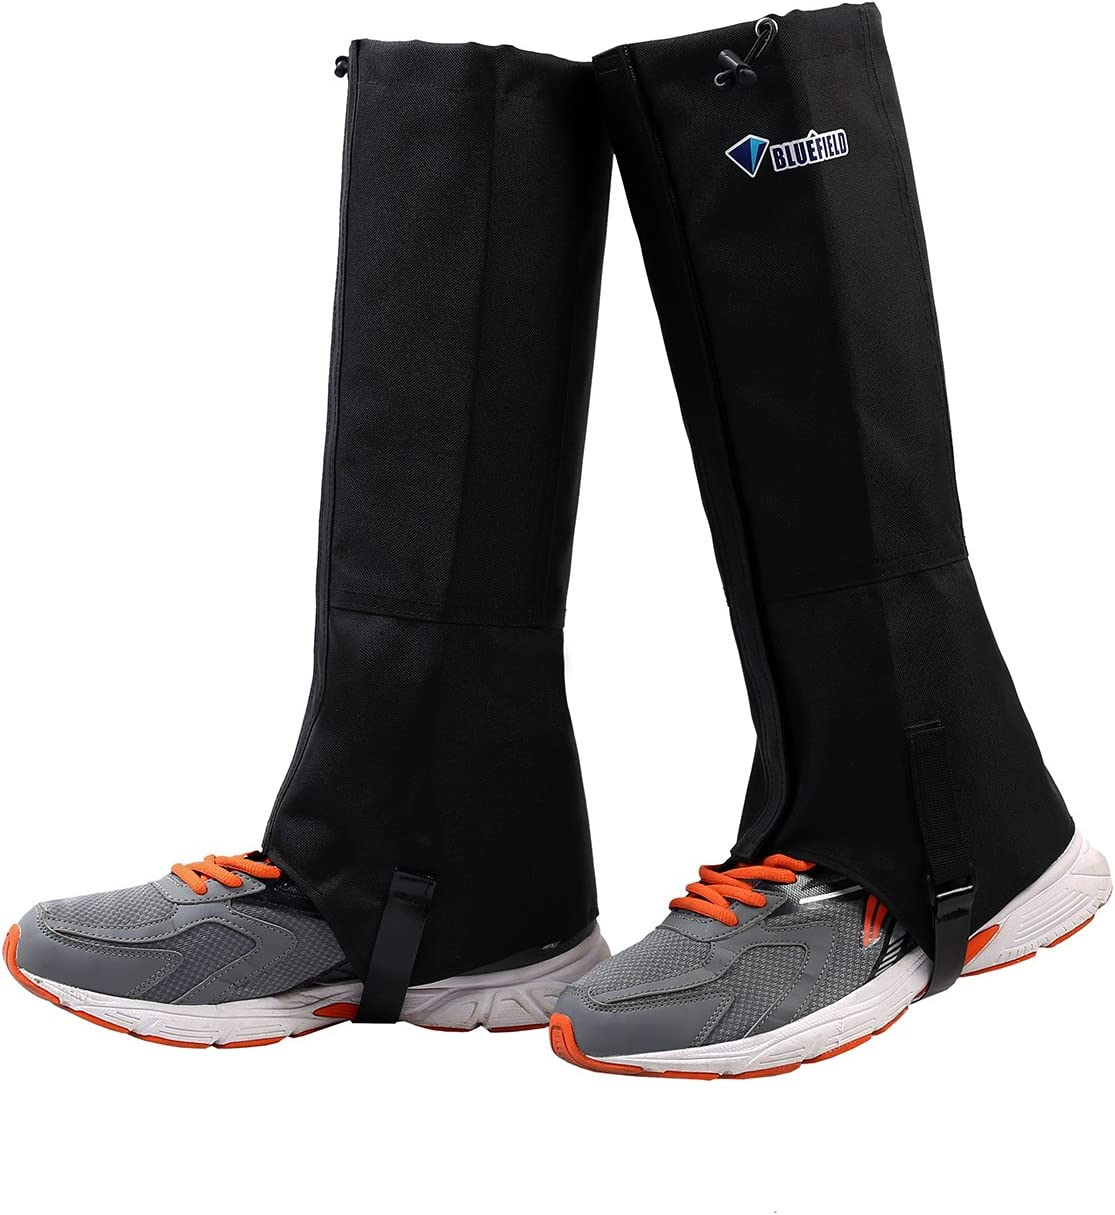 Hunting Research YUEVO SPORTS Waterproof Snow Gaiters Leg Gaiters for Outdoor Hiking Grass trimming Fishing